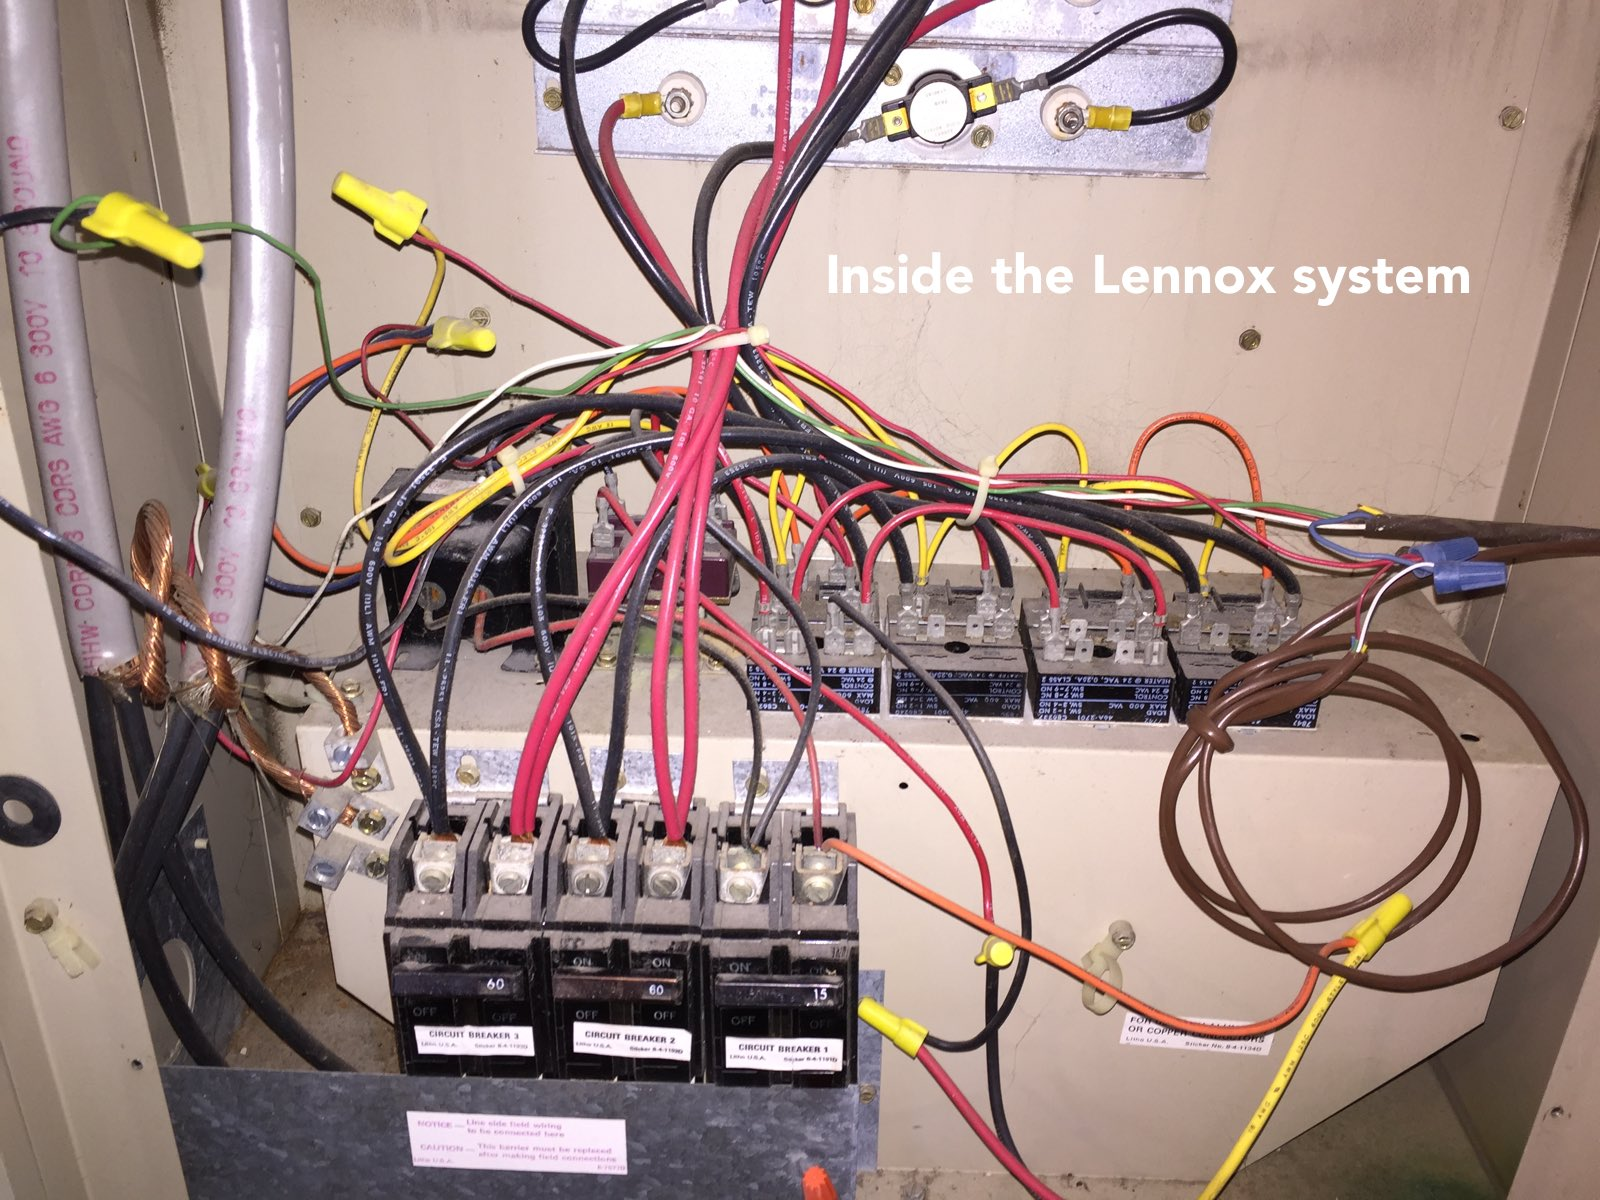 lennox wiring diagram thermostat mercedes w211 diagrams how to add a c wire an old system home